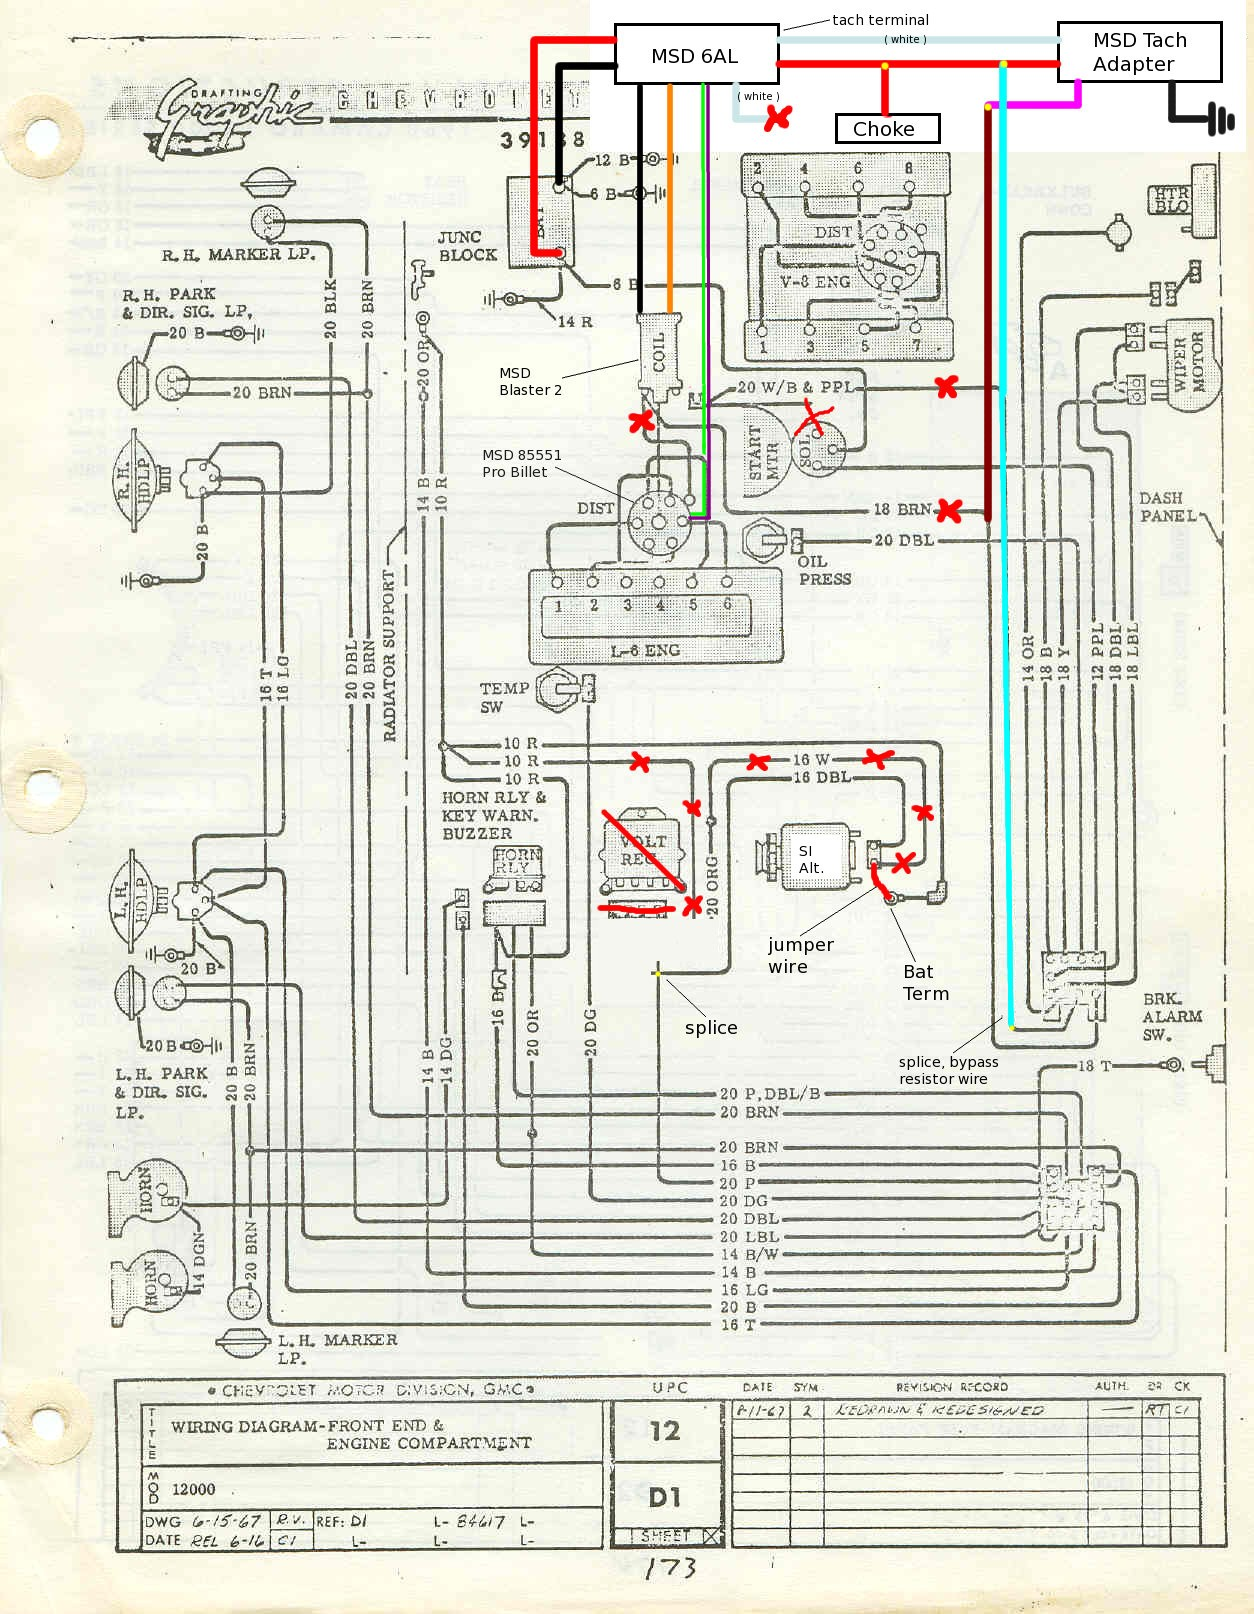 1968 oldsmobile 442 wiring diagram wiring diagrams 68 firebird fuse box list of wiring